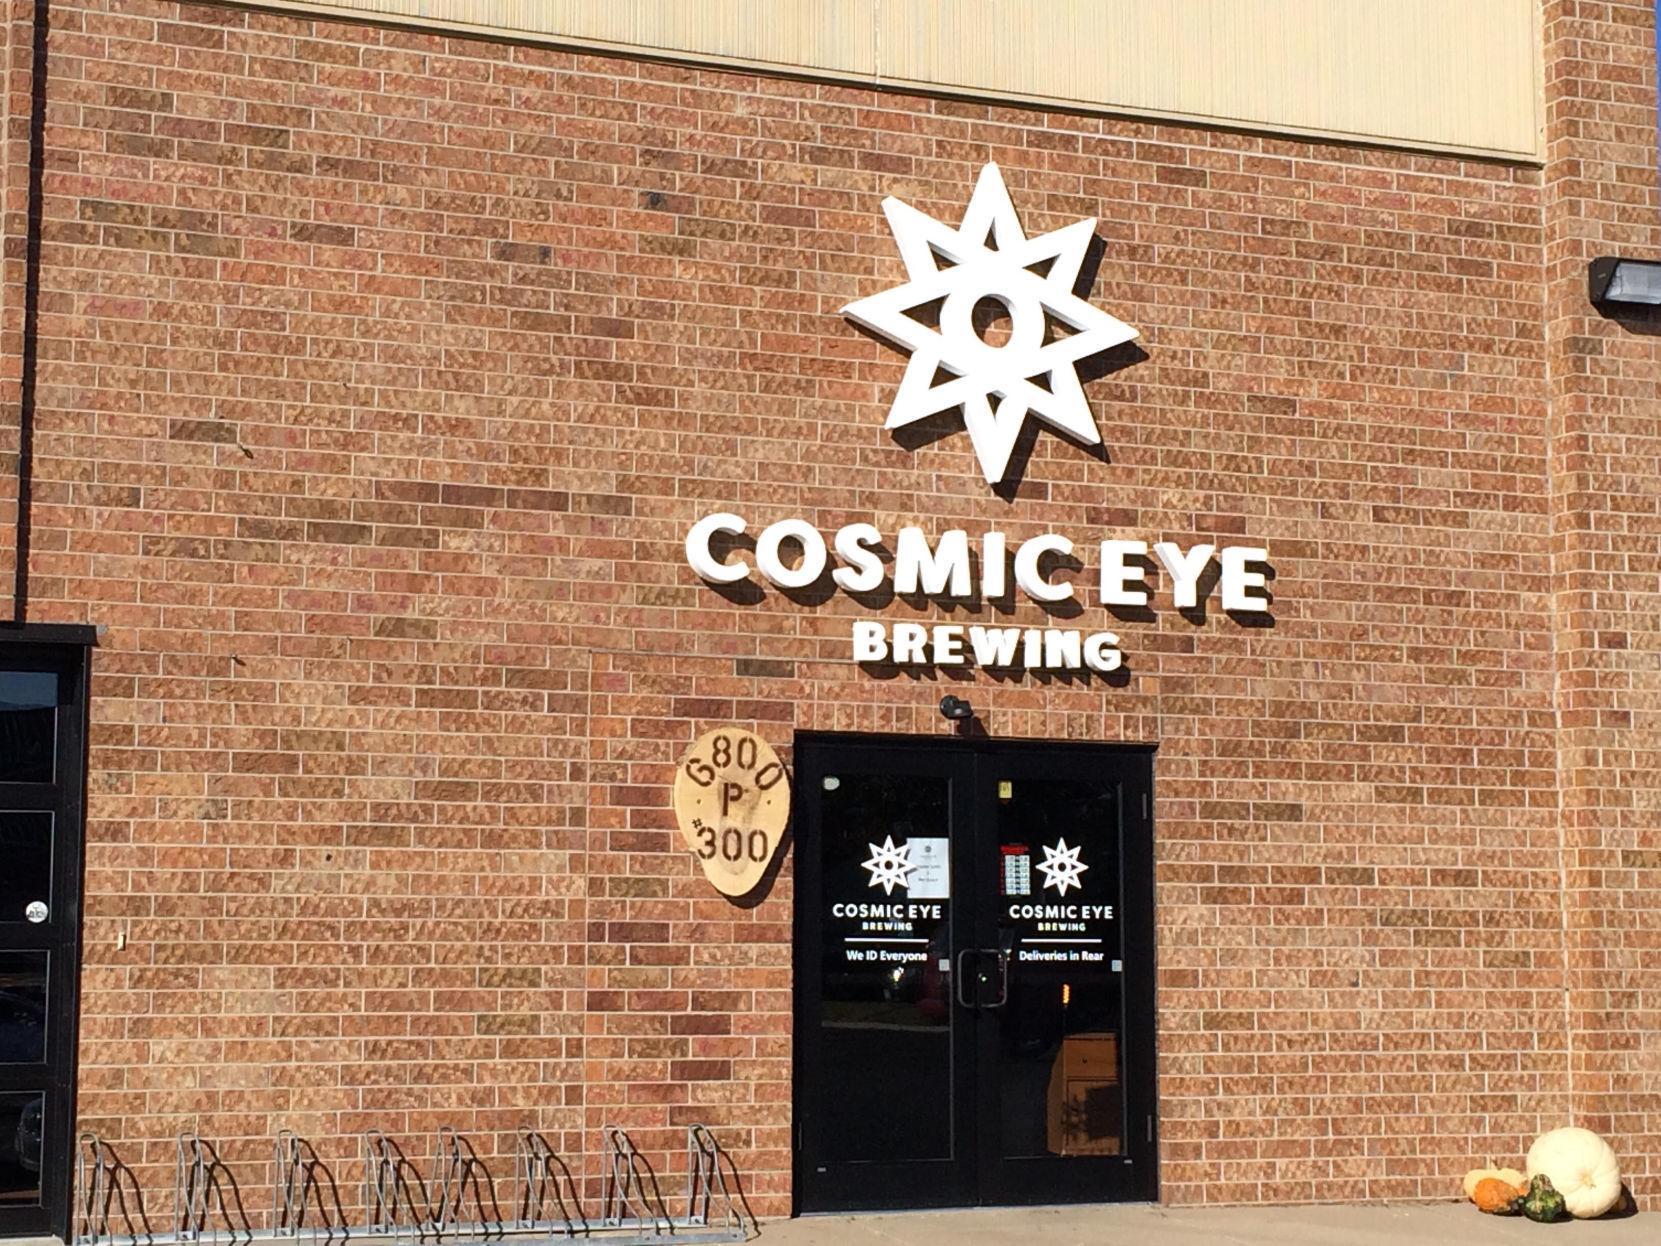 Nightlife review: Lincoln's Cosmic Eye Brewing is family-friendly and full of good brews